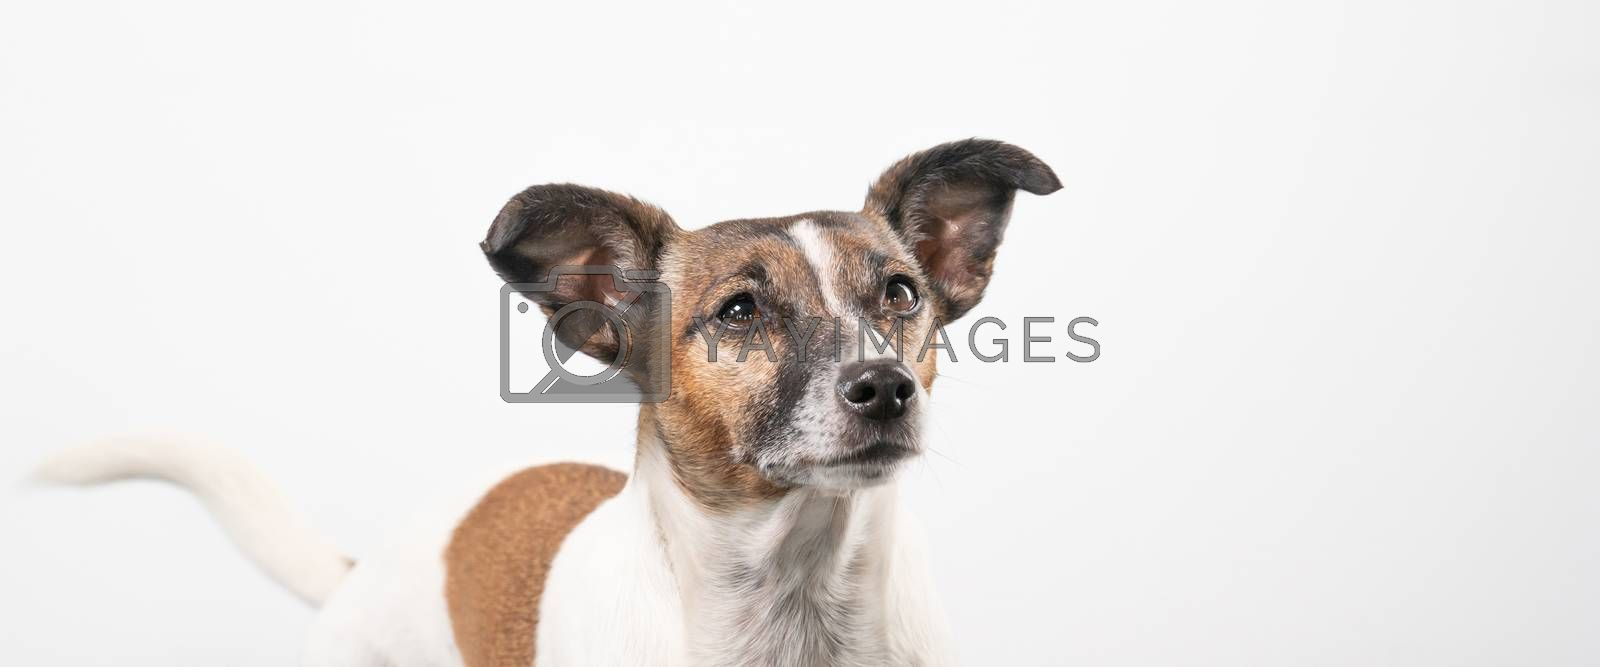 Brown and white older Jack Russell Terrier on a white background, head only. Social media banner or cover.